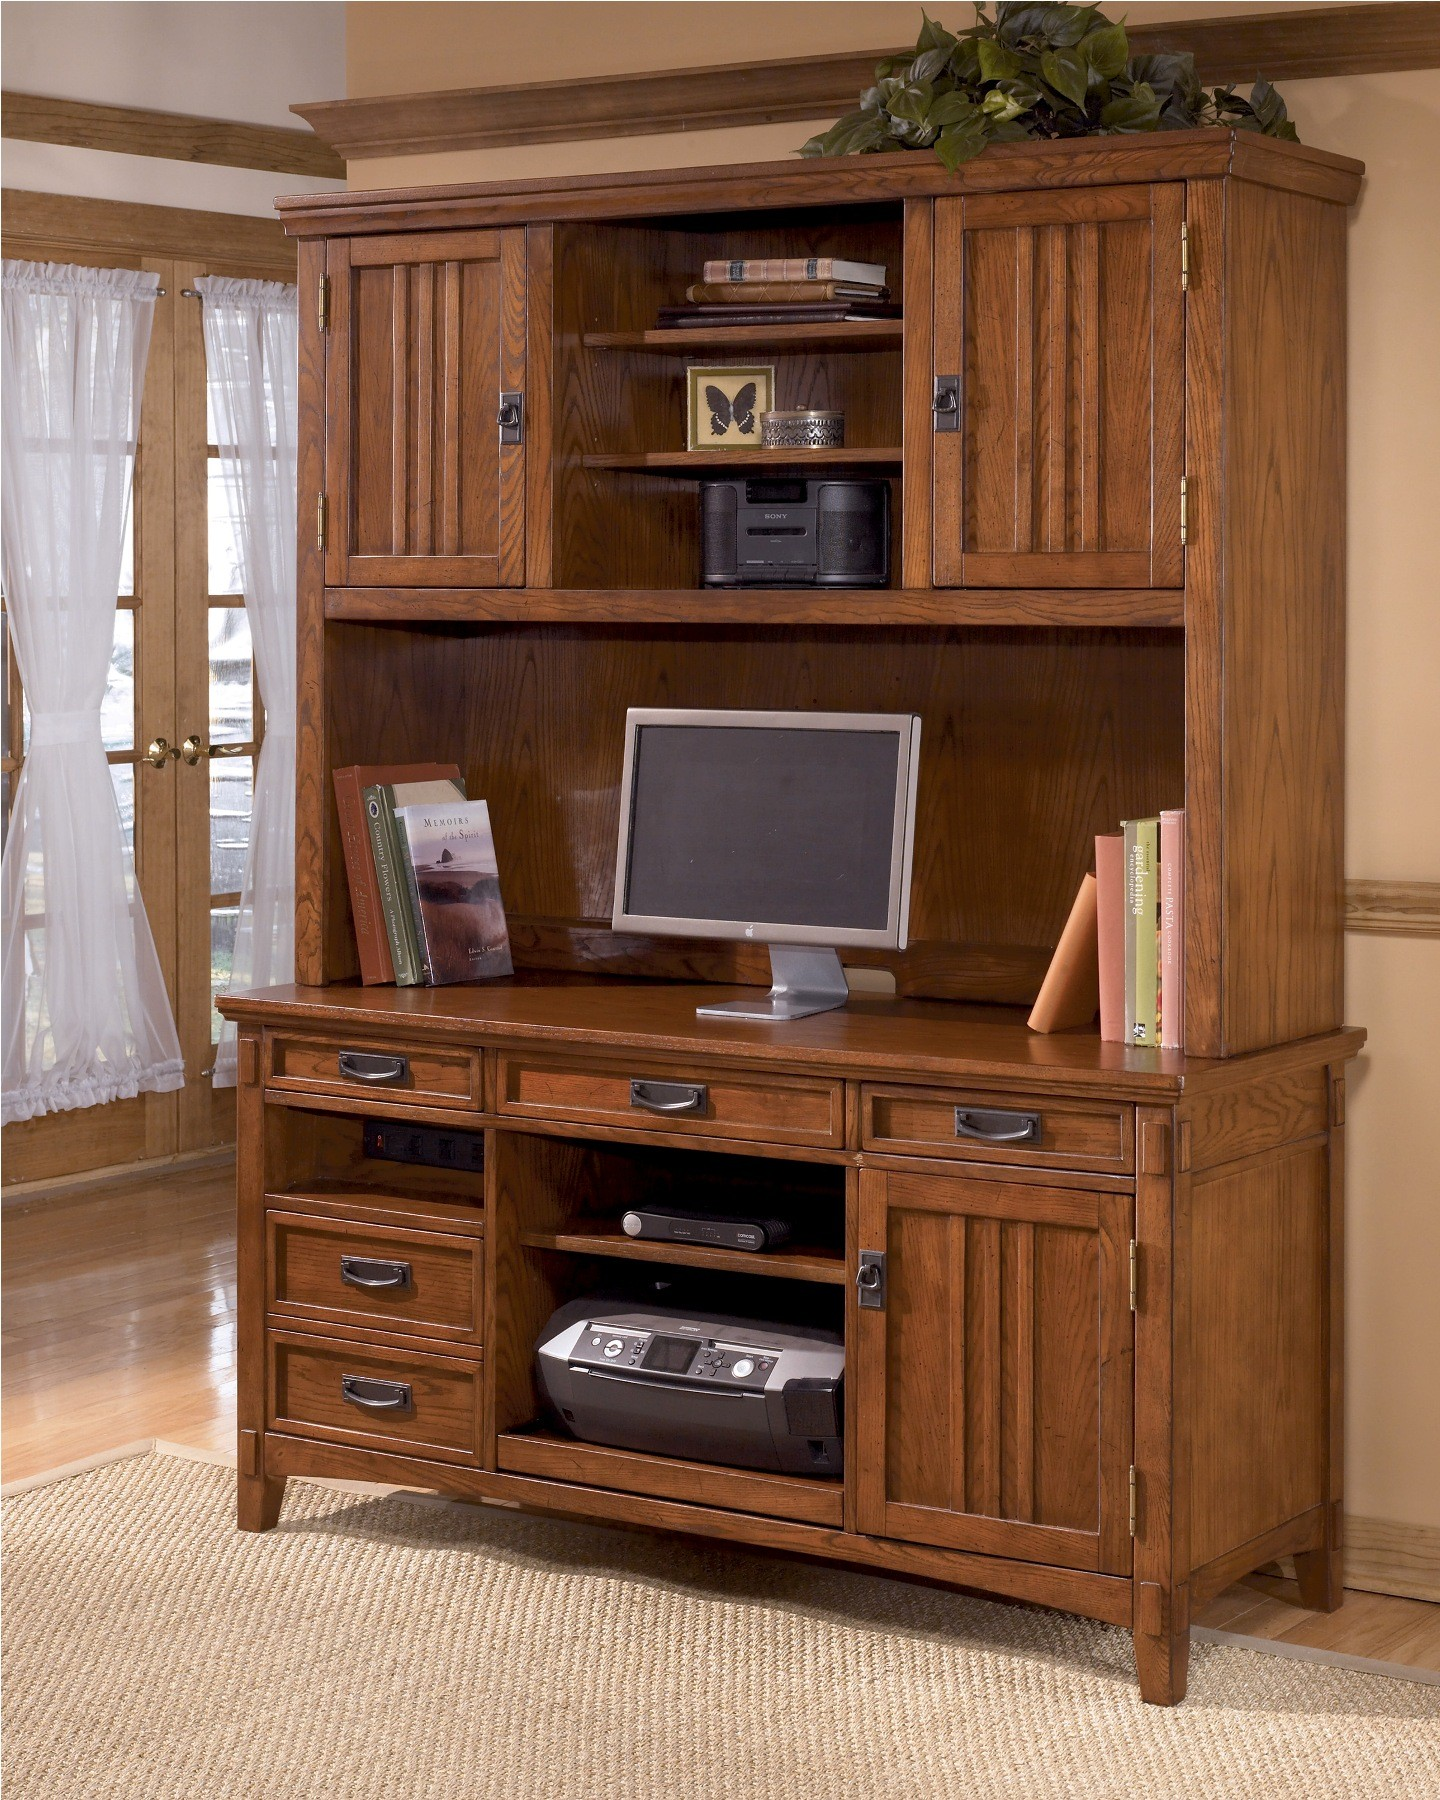 Cross Island Credenza W Hutch Home Office Set From Ashley